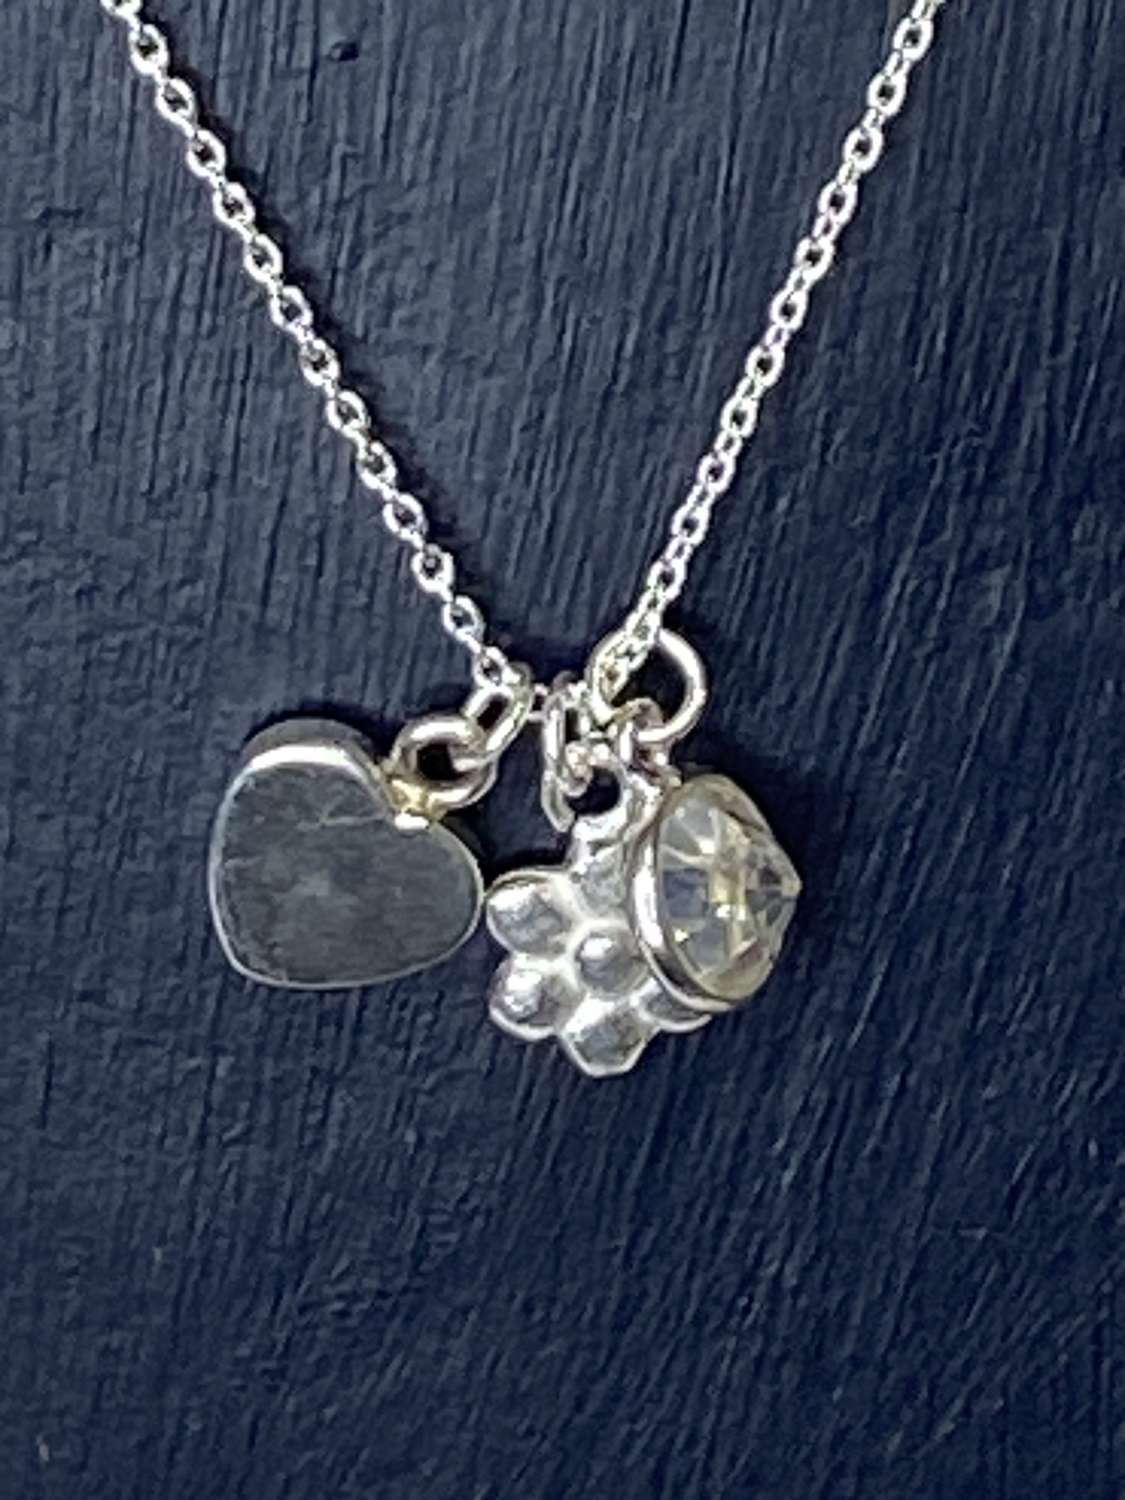 Stirling silver necklace - flower, heart, CZ pendants